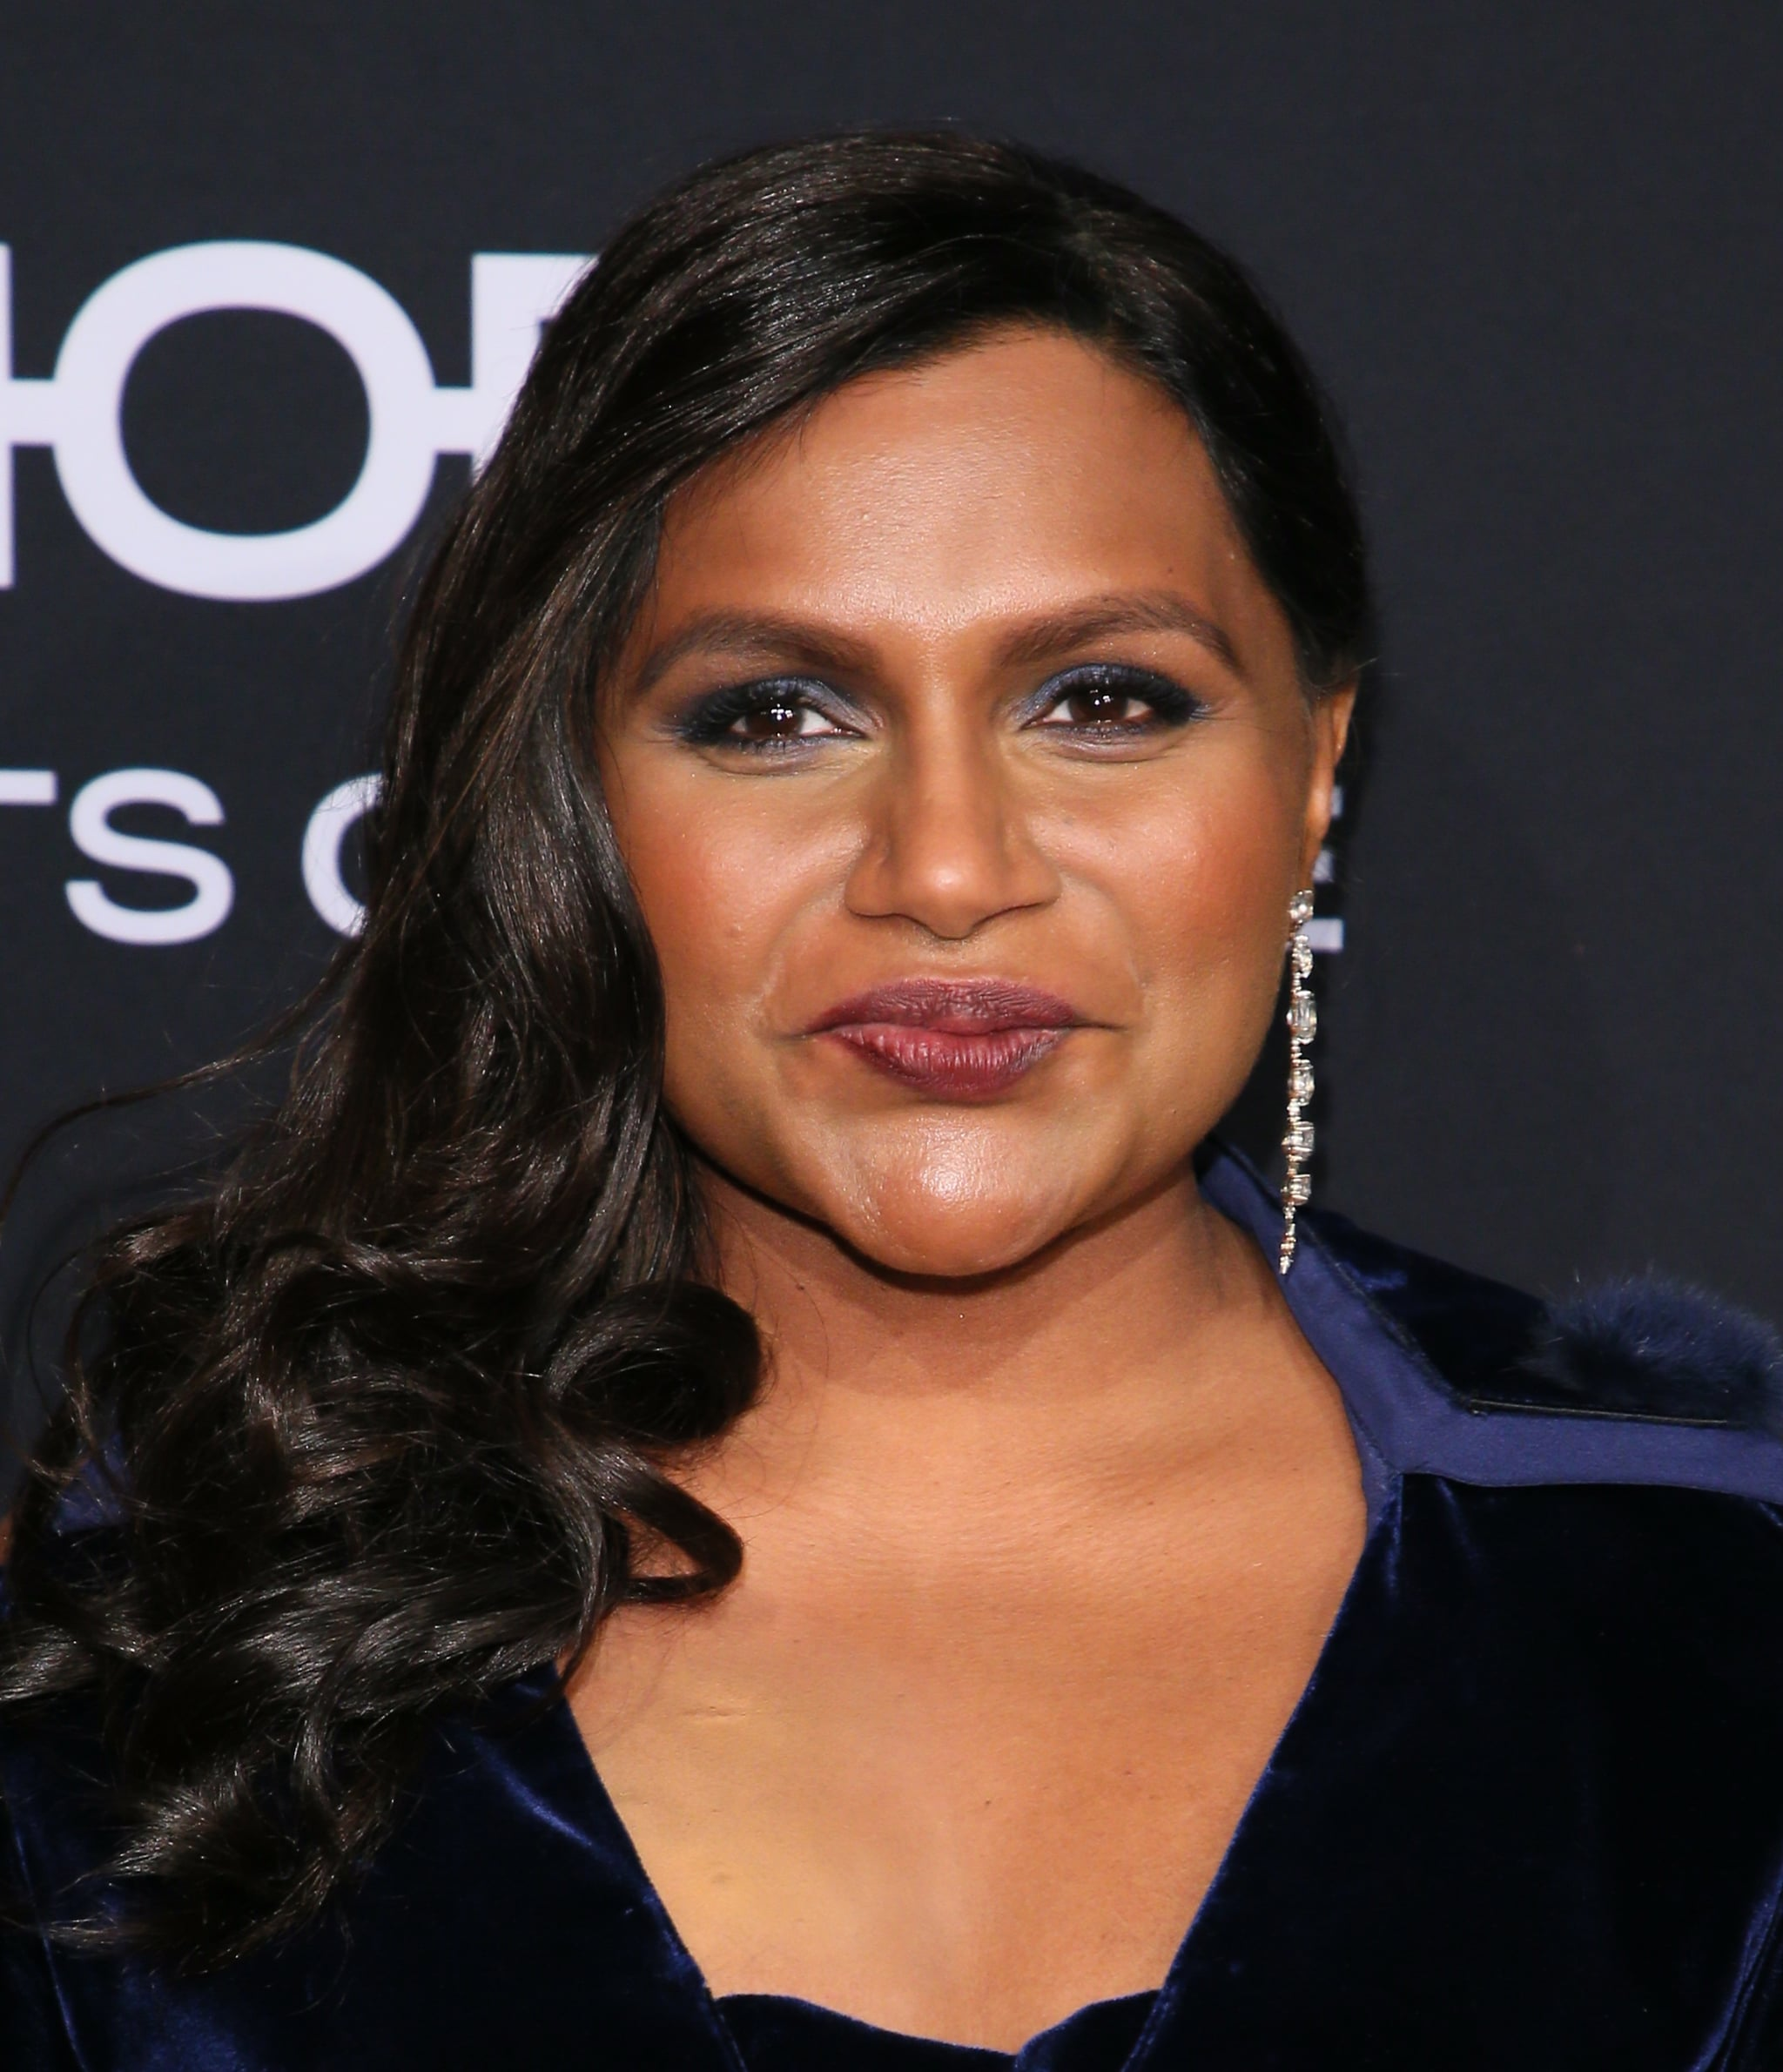 LOS ANGELES, CA - OCTOBER 15: Mindy Kaling attends the 25th Annual ELLE Women in Hollywood Celebration at Four Seasons Hotel Los Angeles at Beverly Hills on October 15, 2018 in Los Angeles, California.  (Photo by JB Lacroix/WireImage)